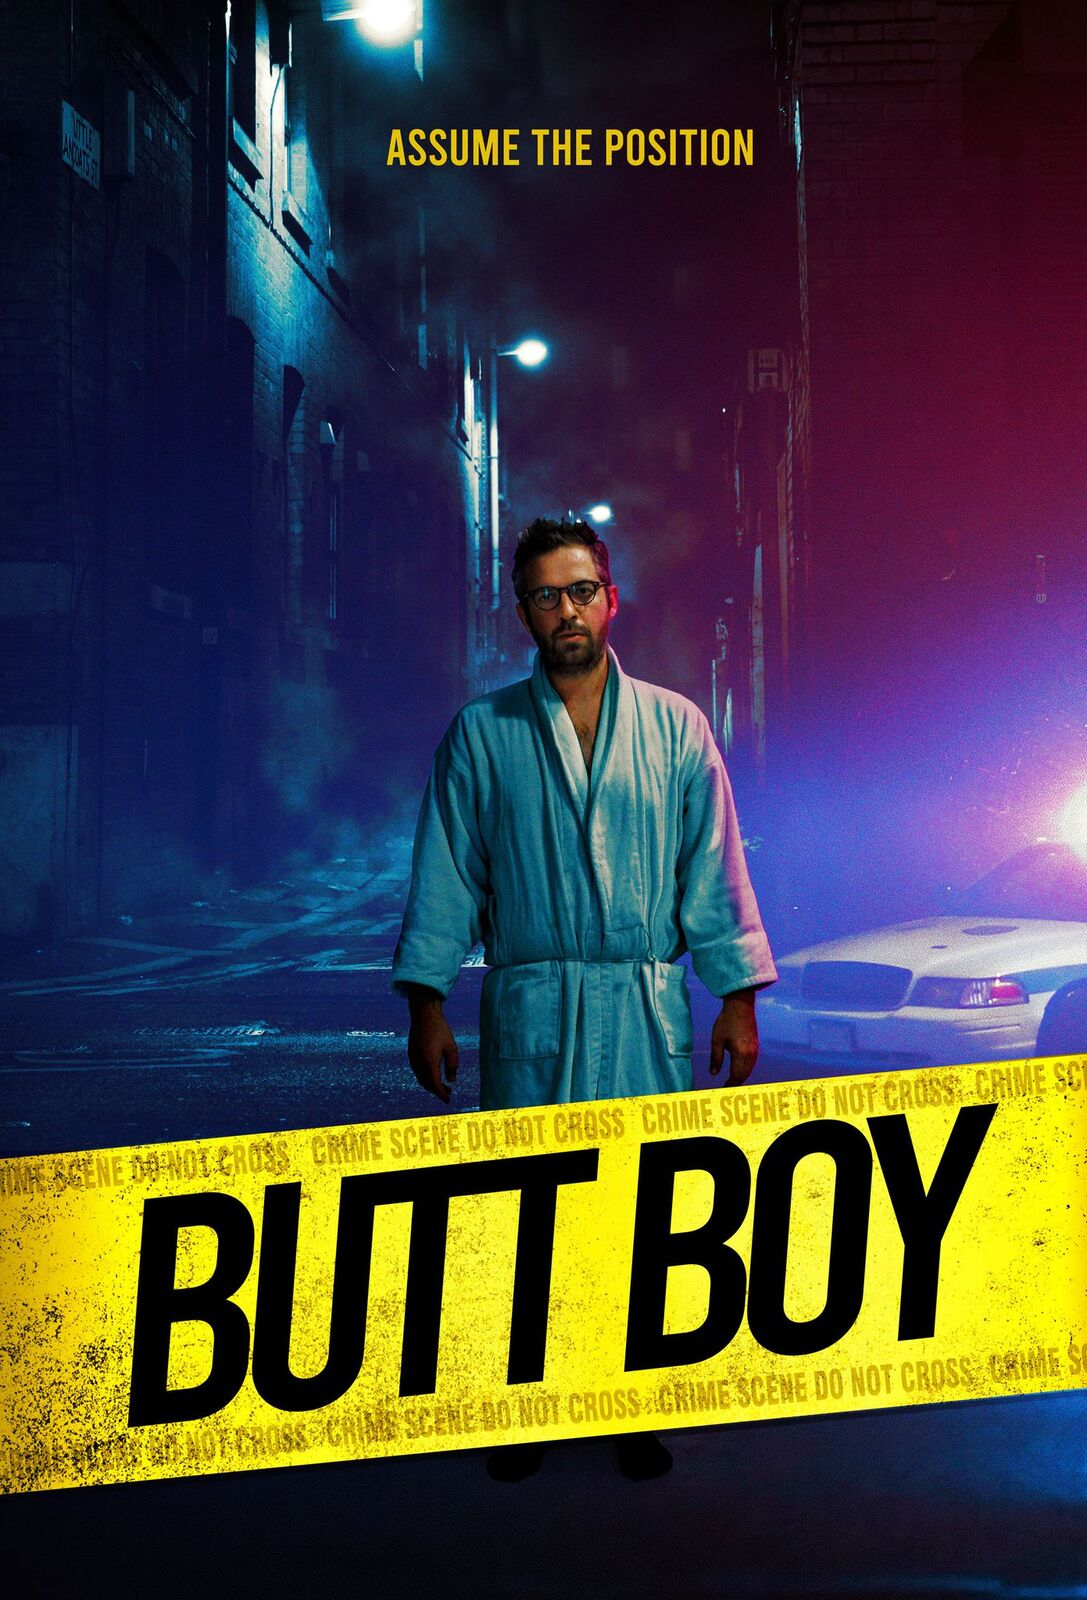 [Review] Tyler Cornack's Absurdist Comedy-Thriller BUTT BOY is A Movie Made Where The Sun Don't Shine